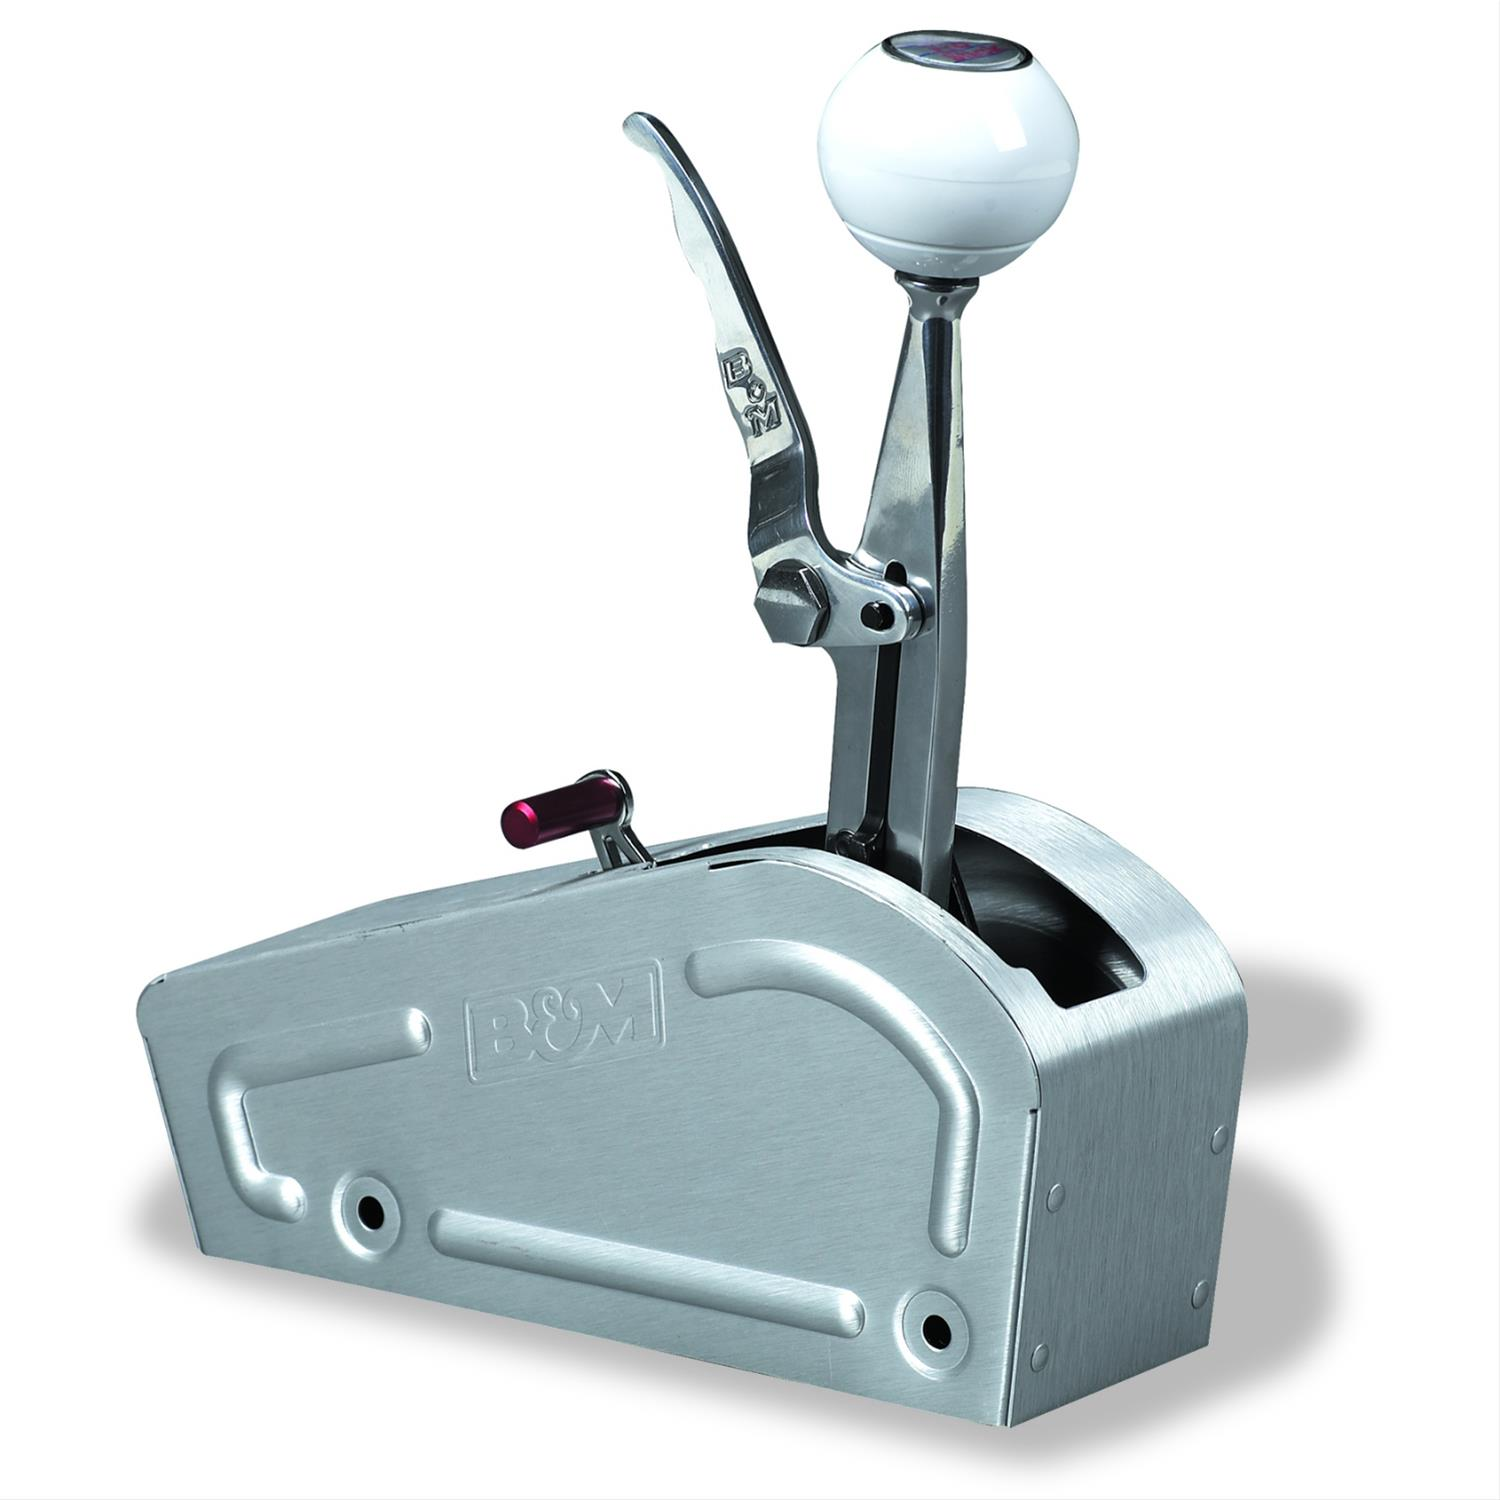 Bm Pro Stick Shifters 80706 Free Shipping On Orders Over 99 At